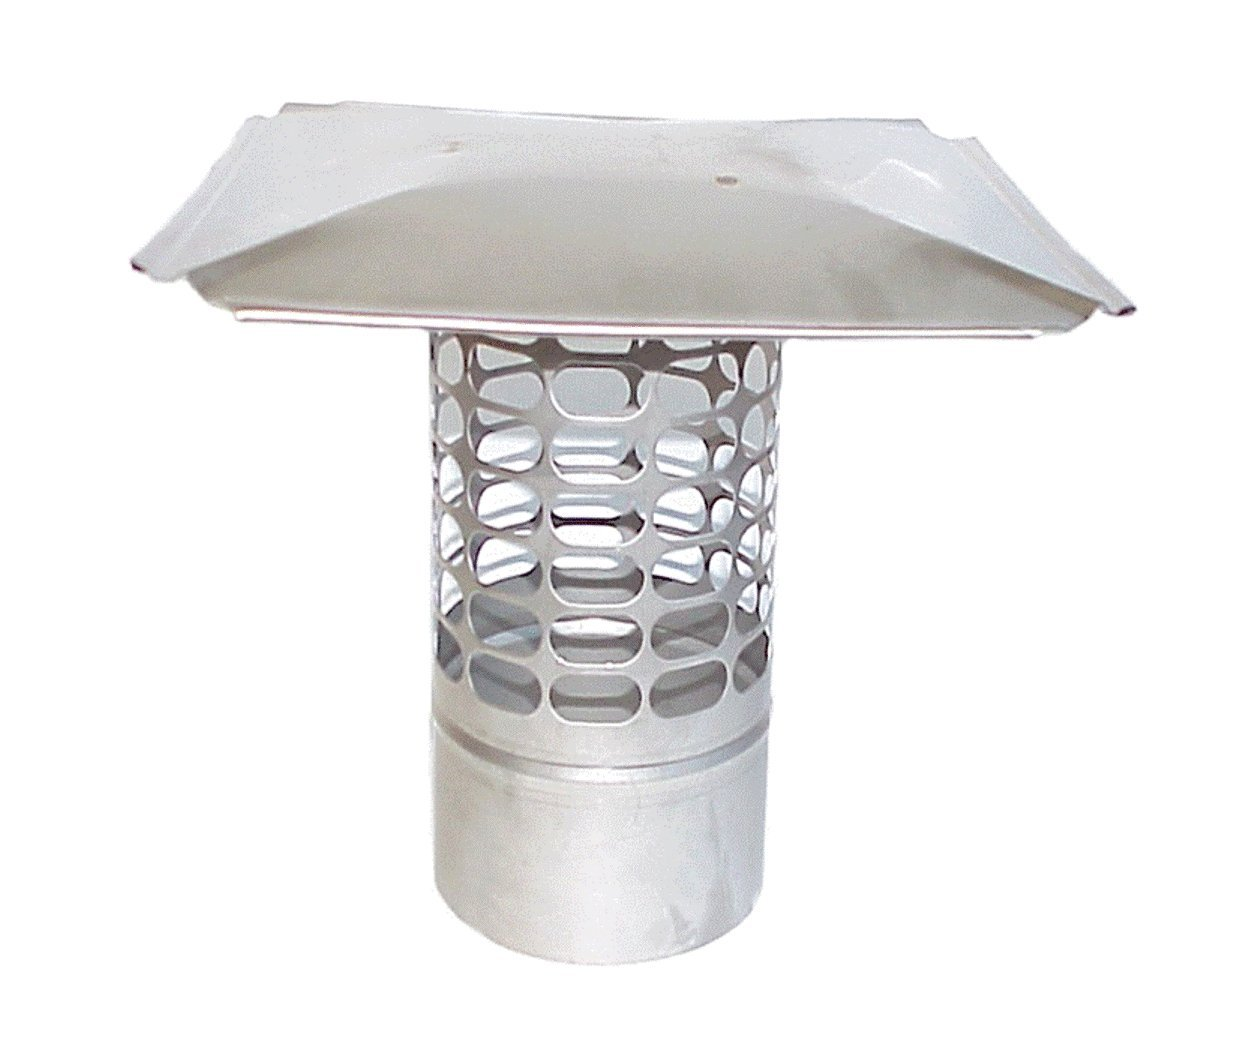 The Forever Cap CCSS3R 3-Inch Stainless Steel Slip In Round Chimney Cap